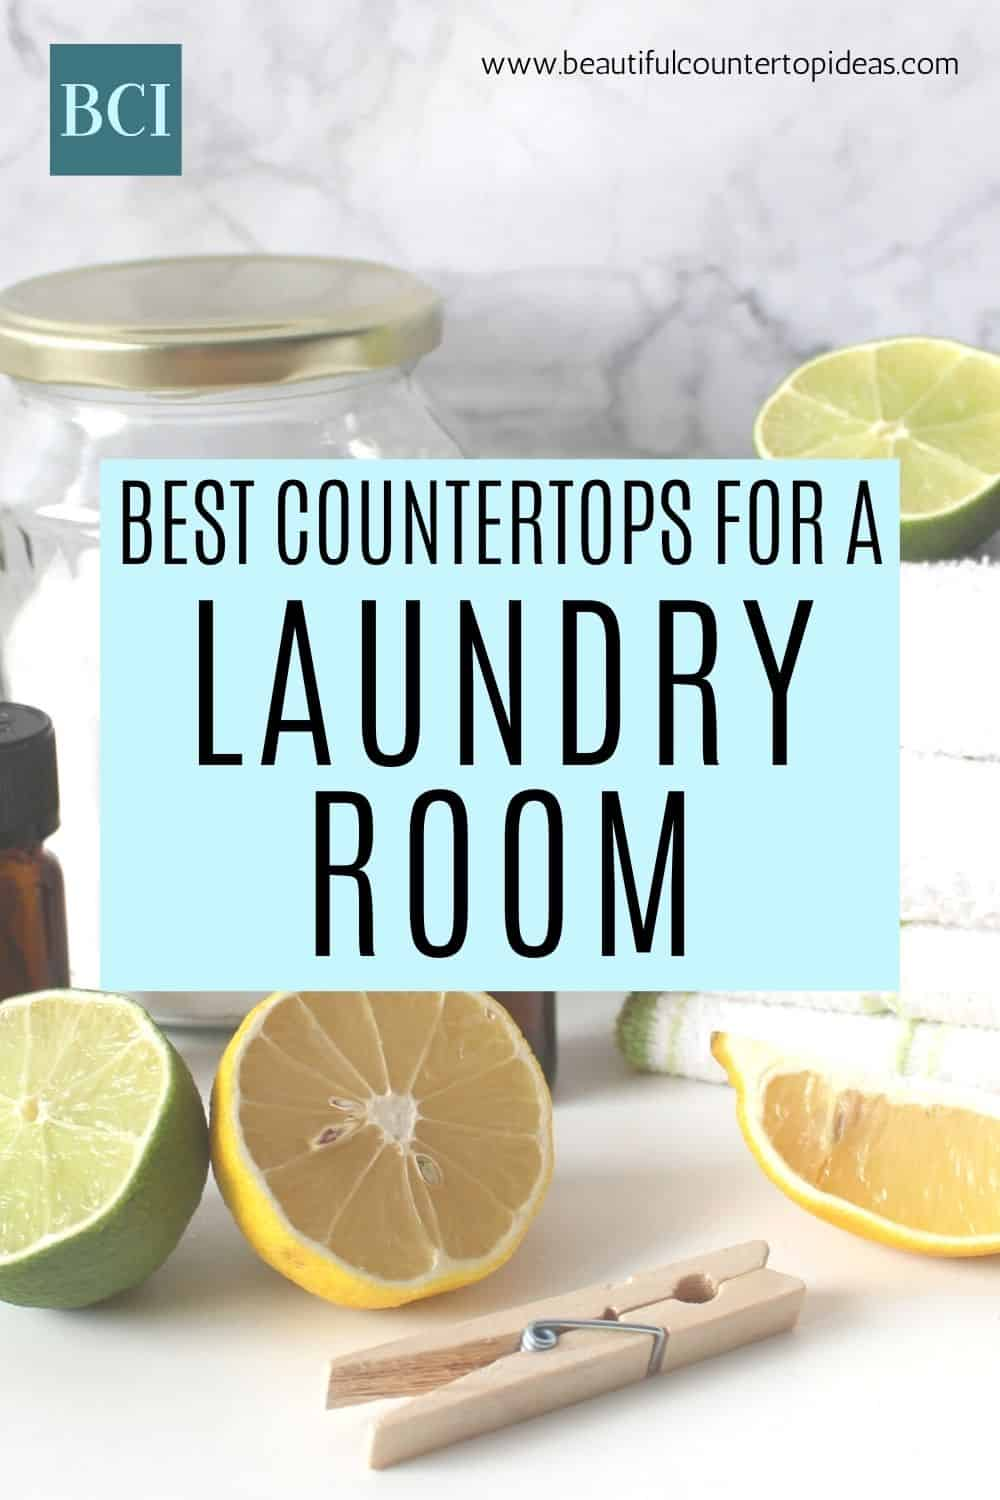 Ready to update a laundry room? Get advice on choosing a laundry room countertop, and make your time washing clothes a little more enjoyable.